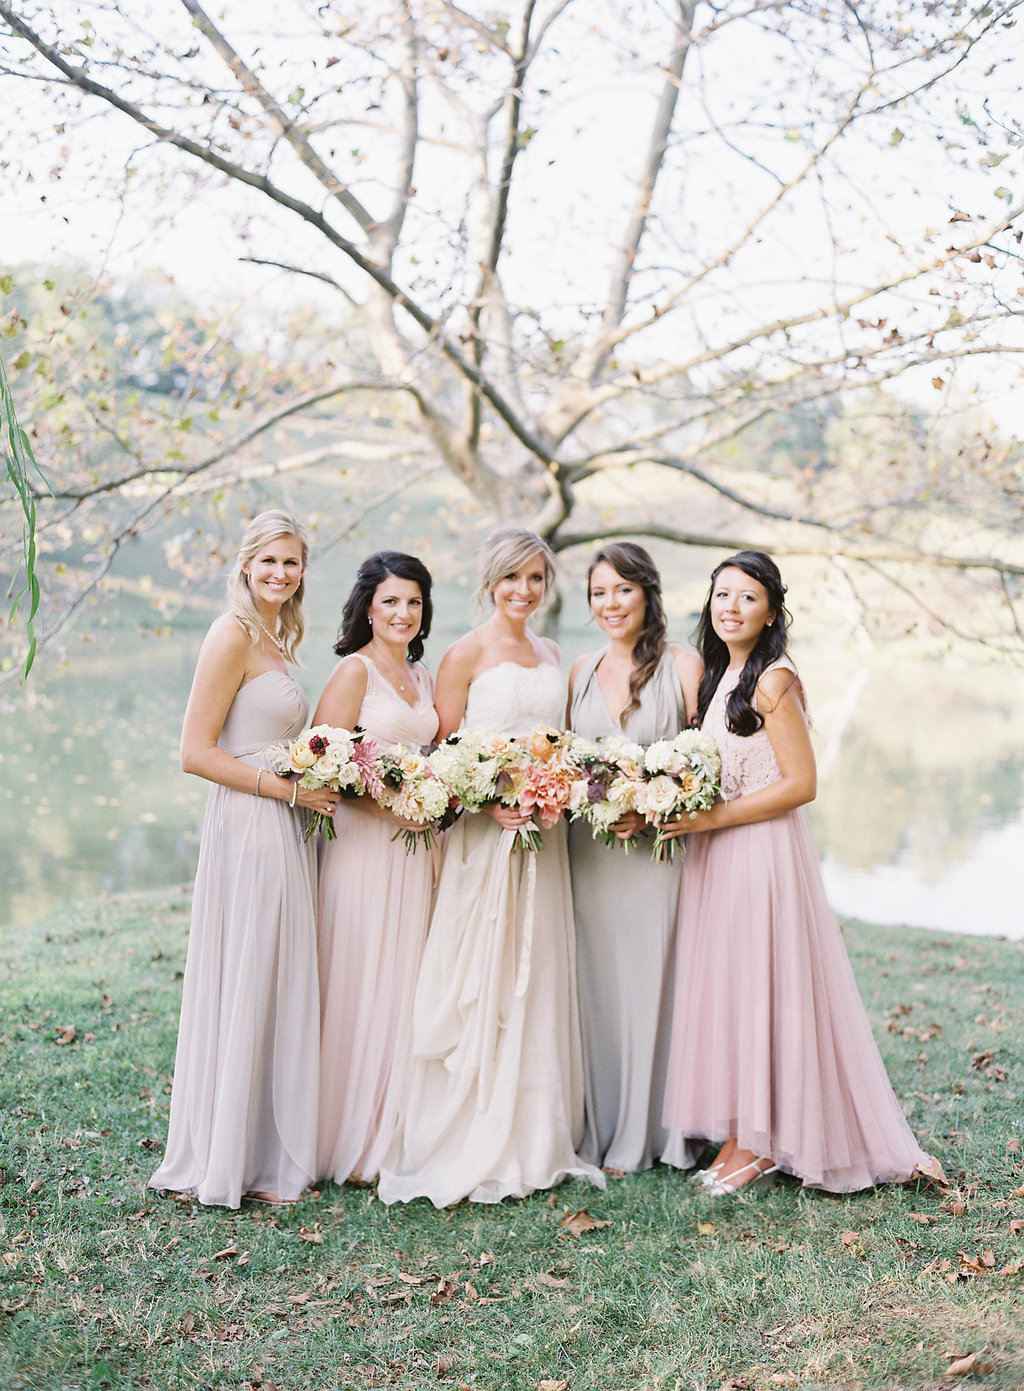 SawyerBaird_CM_ Bridesmaid